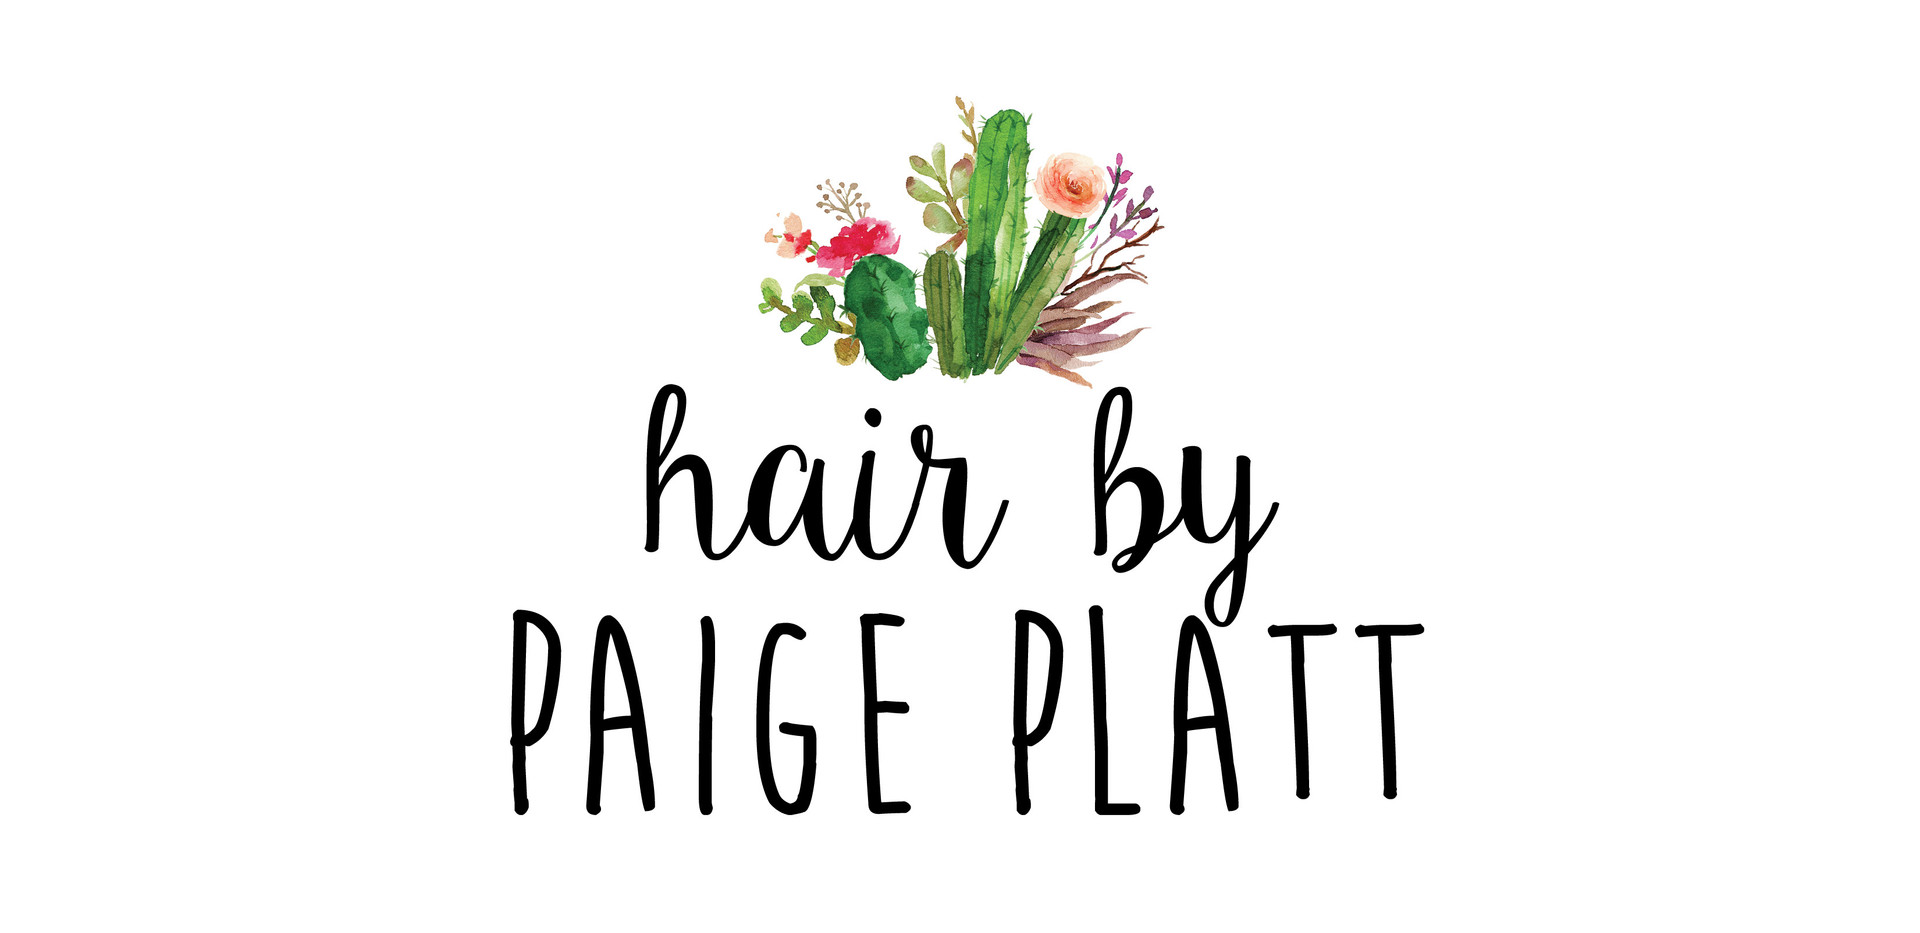 Hair by Paige Platt - 1